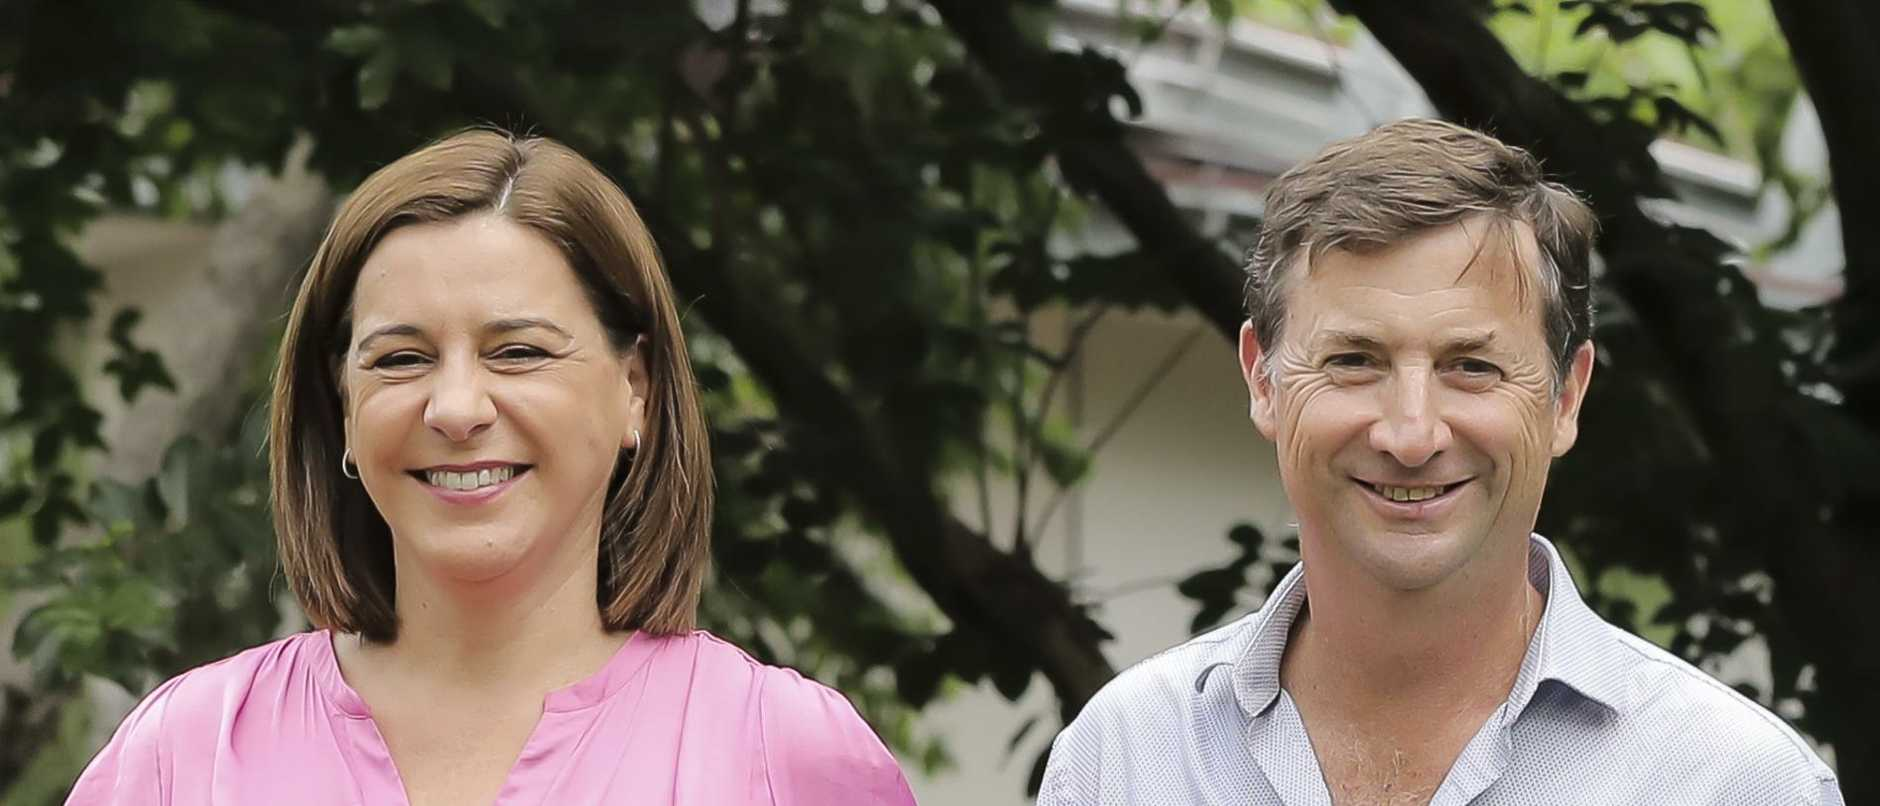 Deb Frecklington's husband is working for the proponent of a dam project the LNP has pledged to provide $10m to as part of its election campaign commitments.